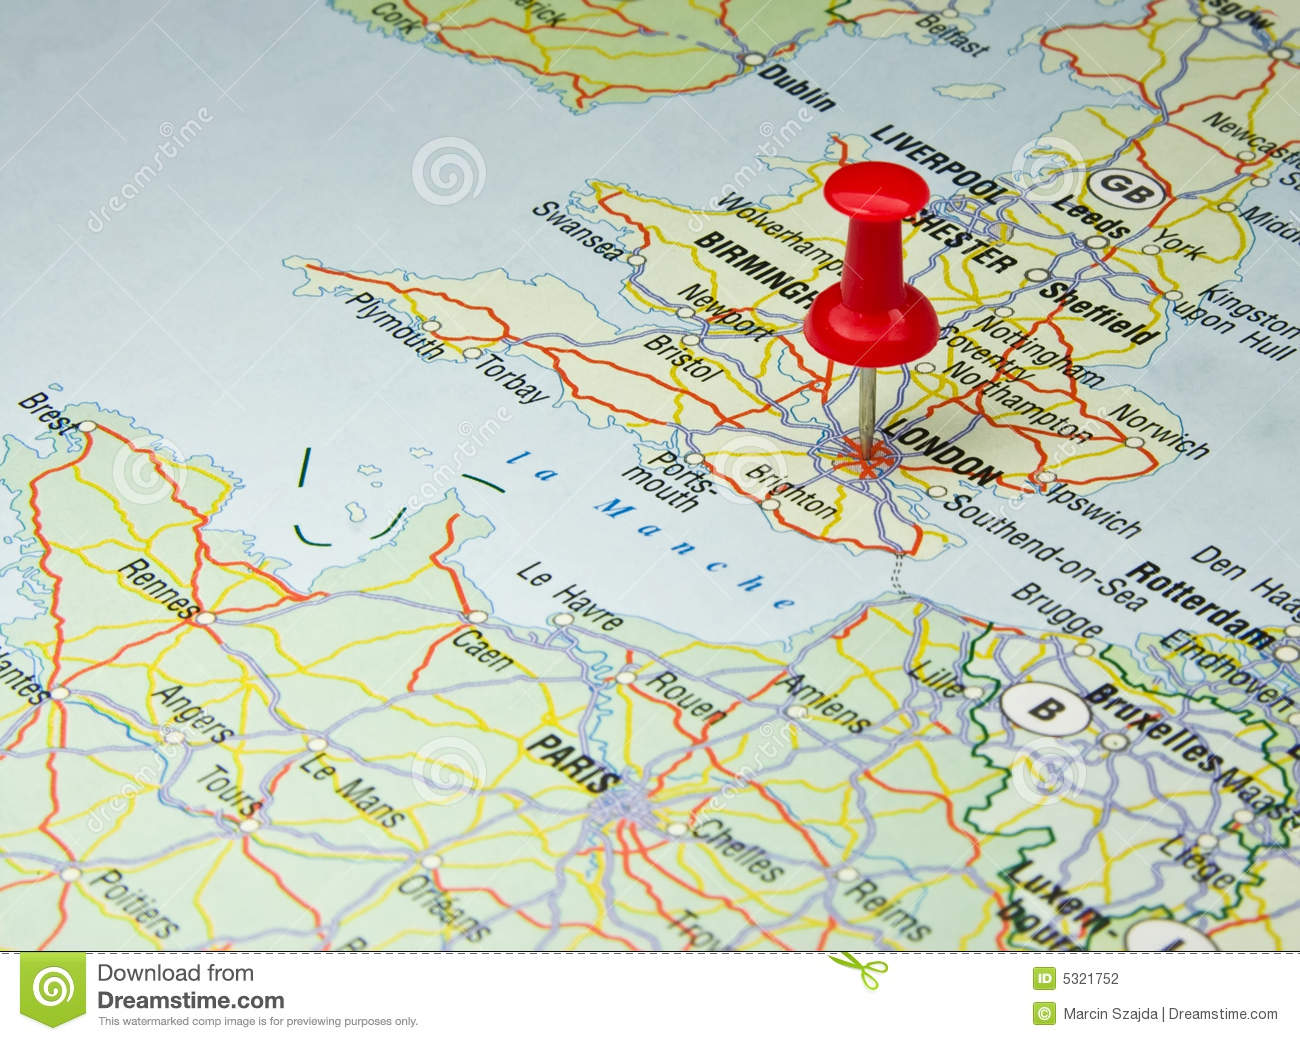 Karte London City.Red Pin On London Map Stock Photo Image Of London Vacation 5321752